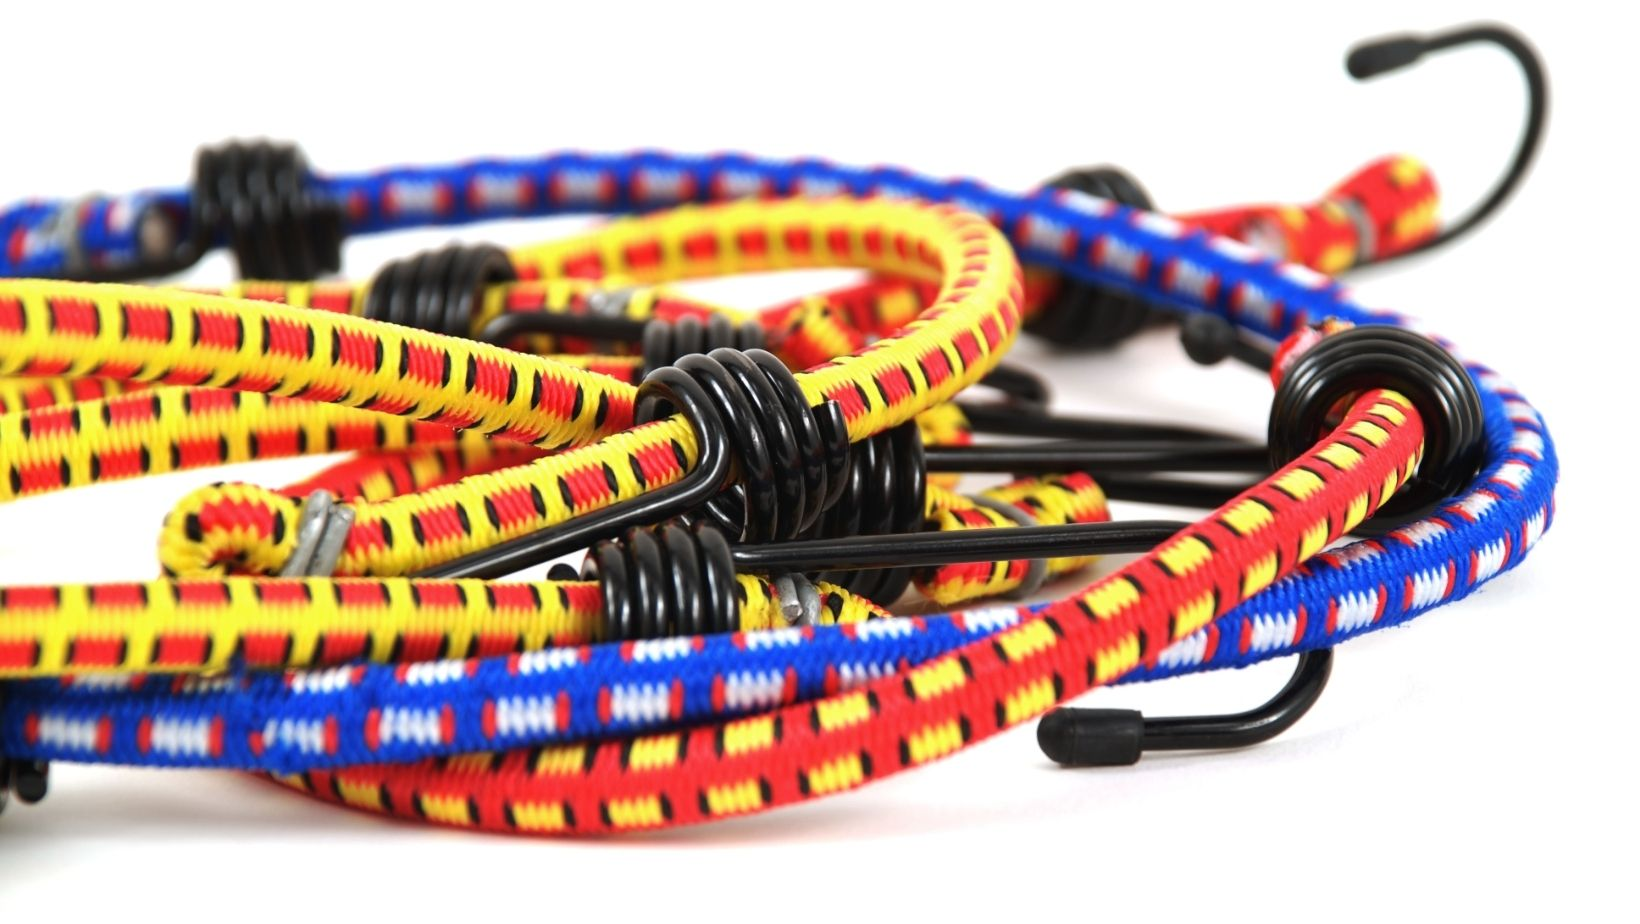 Bungee cords are a great item to have in your RV